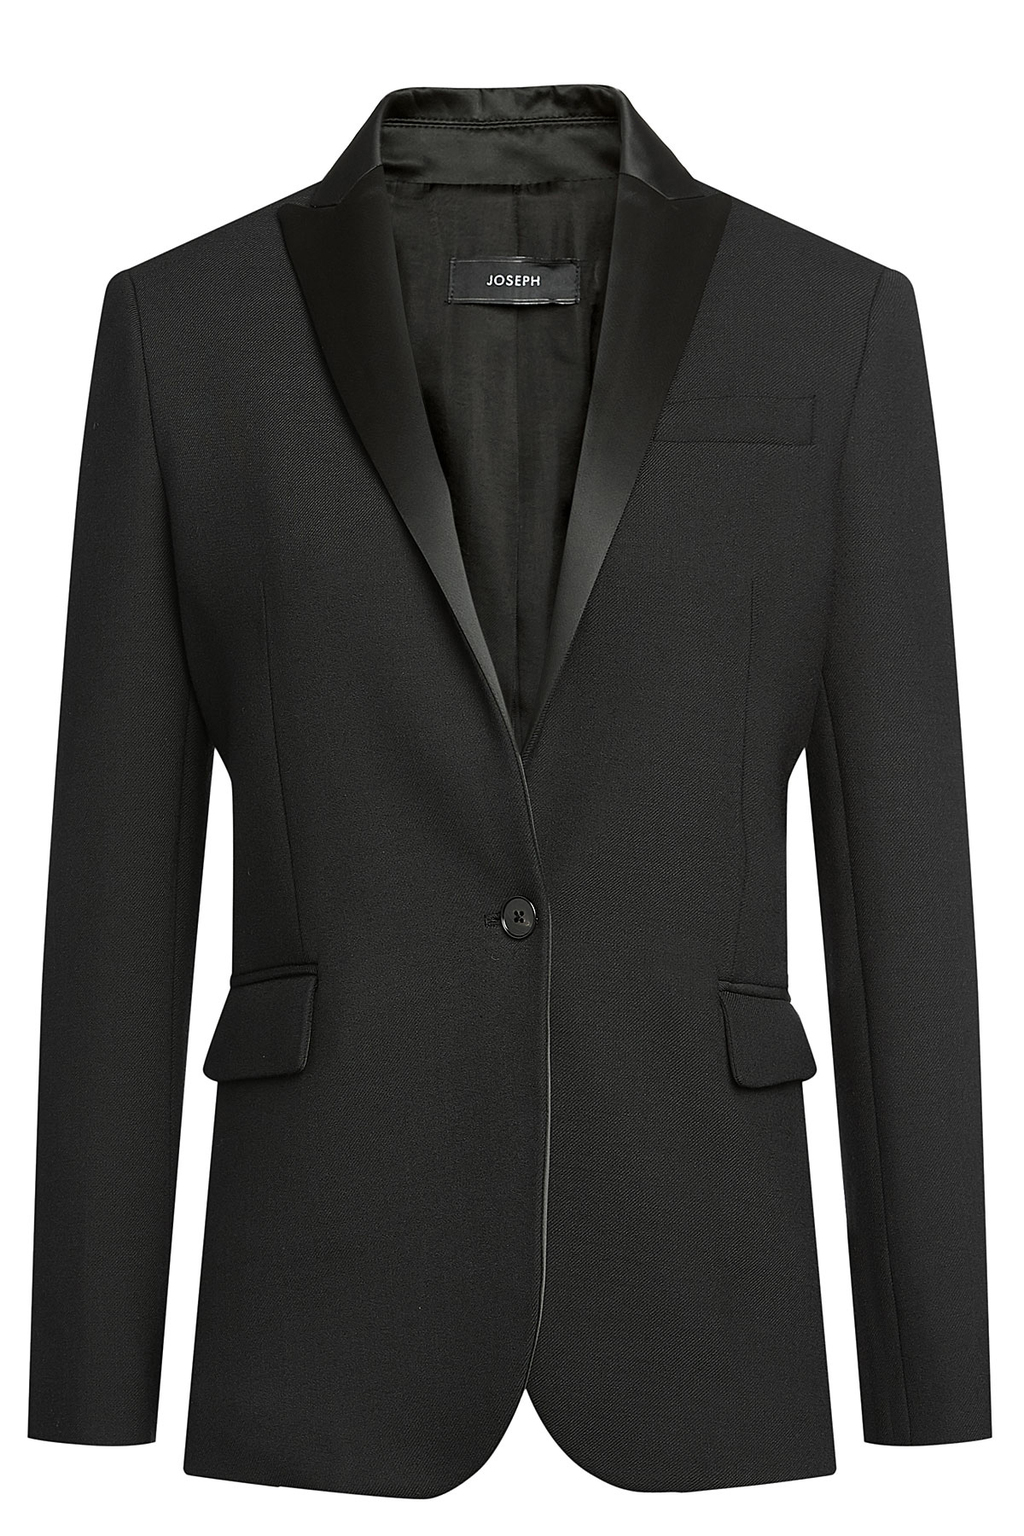 Blazer With Satin Lapels Black - pattern: plain; style: single breasted blazer; collar: standard lapel/rever collar; predominant colour: black; occasions: evening; length: standard; fit: tailored/fitted; fibres: polyester/polyamide - stretch; sleeve length: long sleeve; sleeve style: standard; collar break: medium; pattern type: fabric; texture group: woven light midweight; season: a/w 2016; wardrobe: event